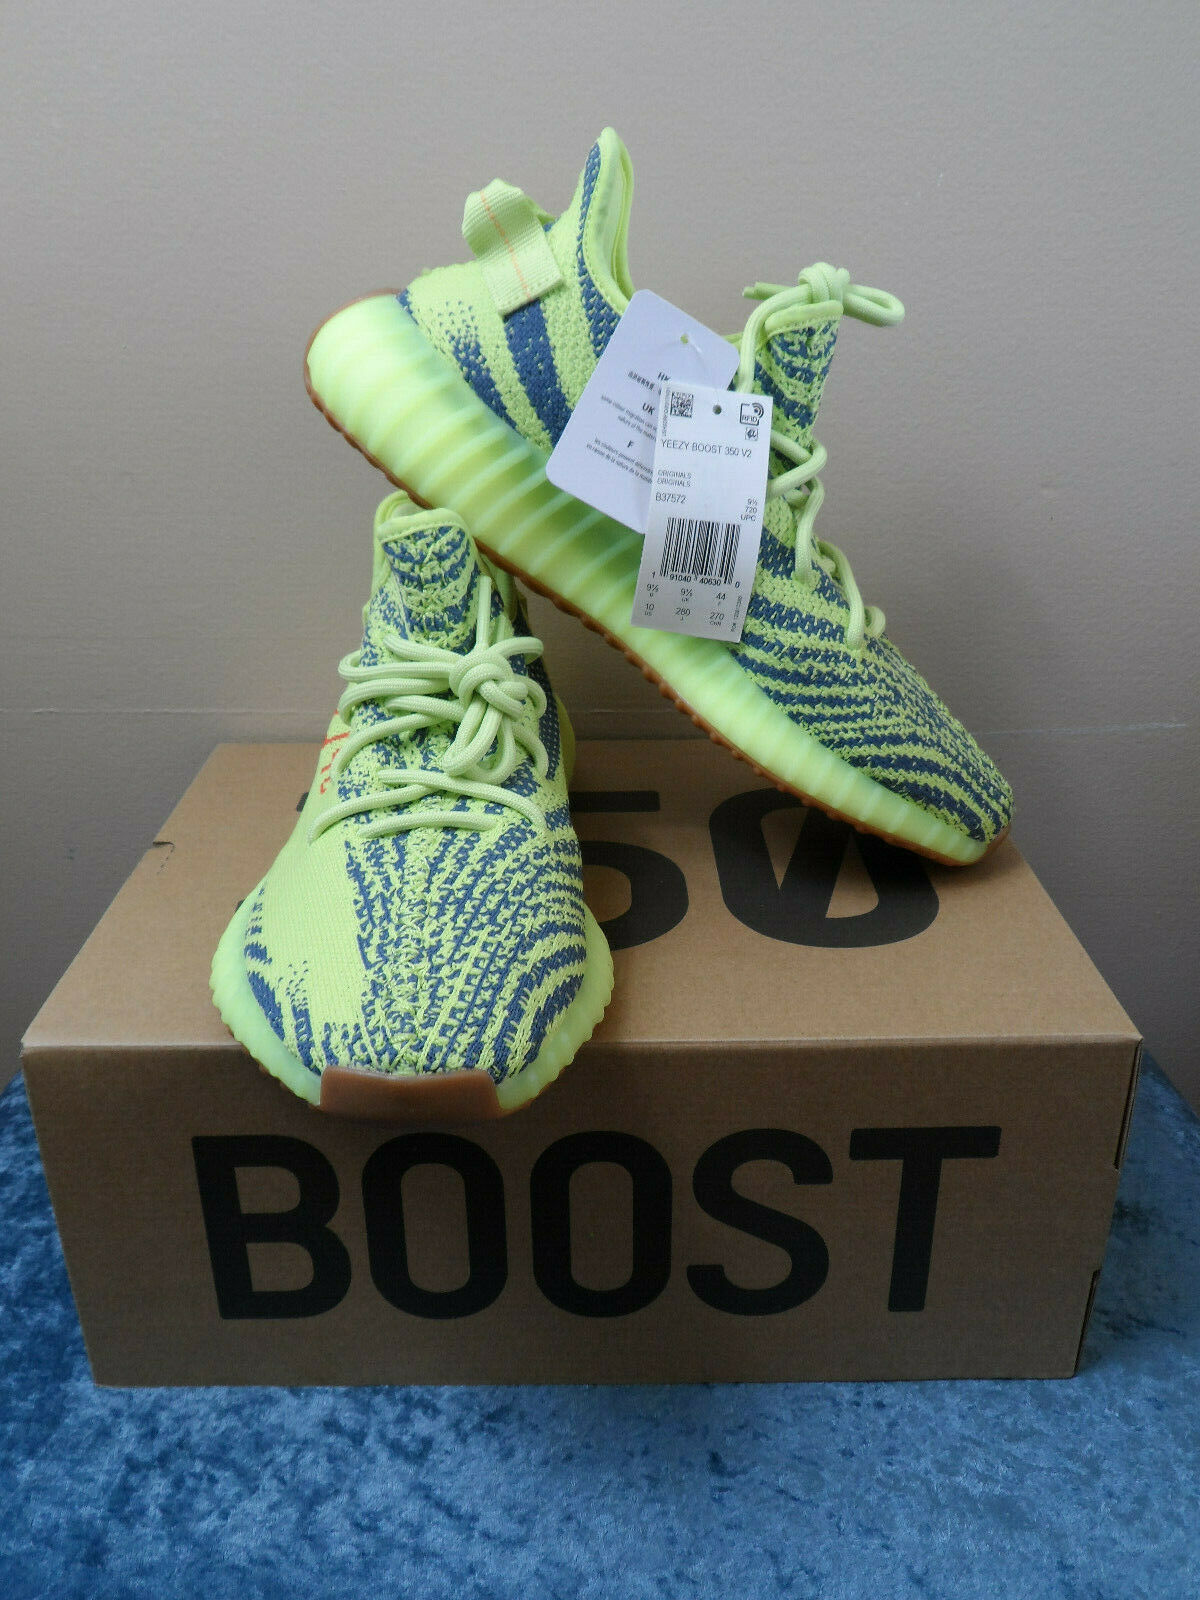 Adidas Yeezy Boost 350 V2 Semi Frozen Yellow B37572 - 100% Authentic - Size 10